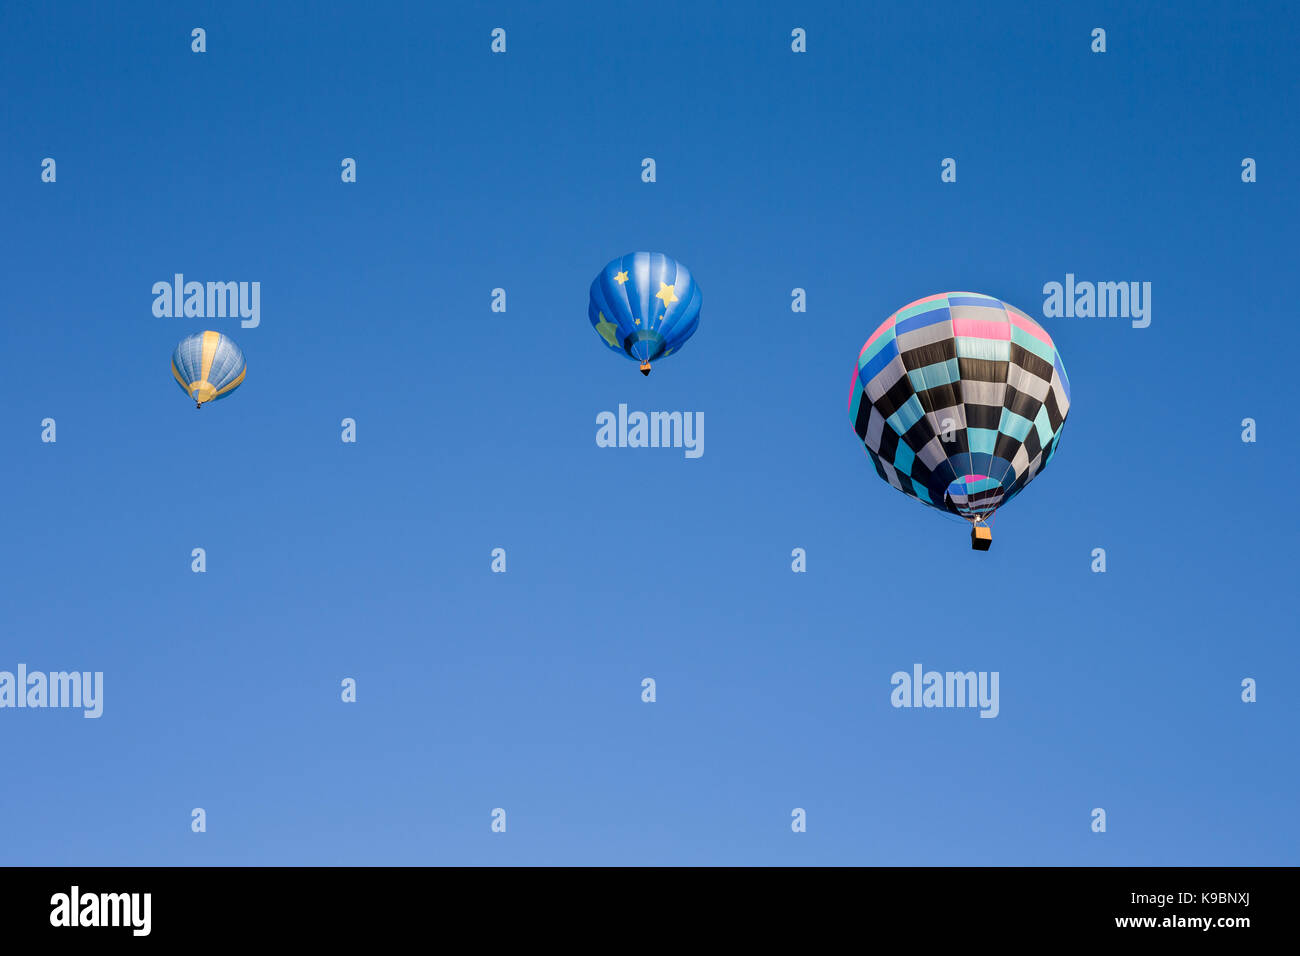 Three colorful hot air balloons set against a clear blue sky.  Seen from below.  Room for copy in the sky. Stock Photo